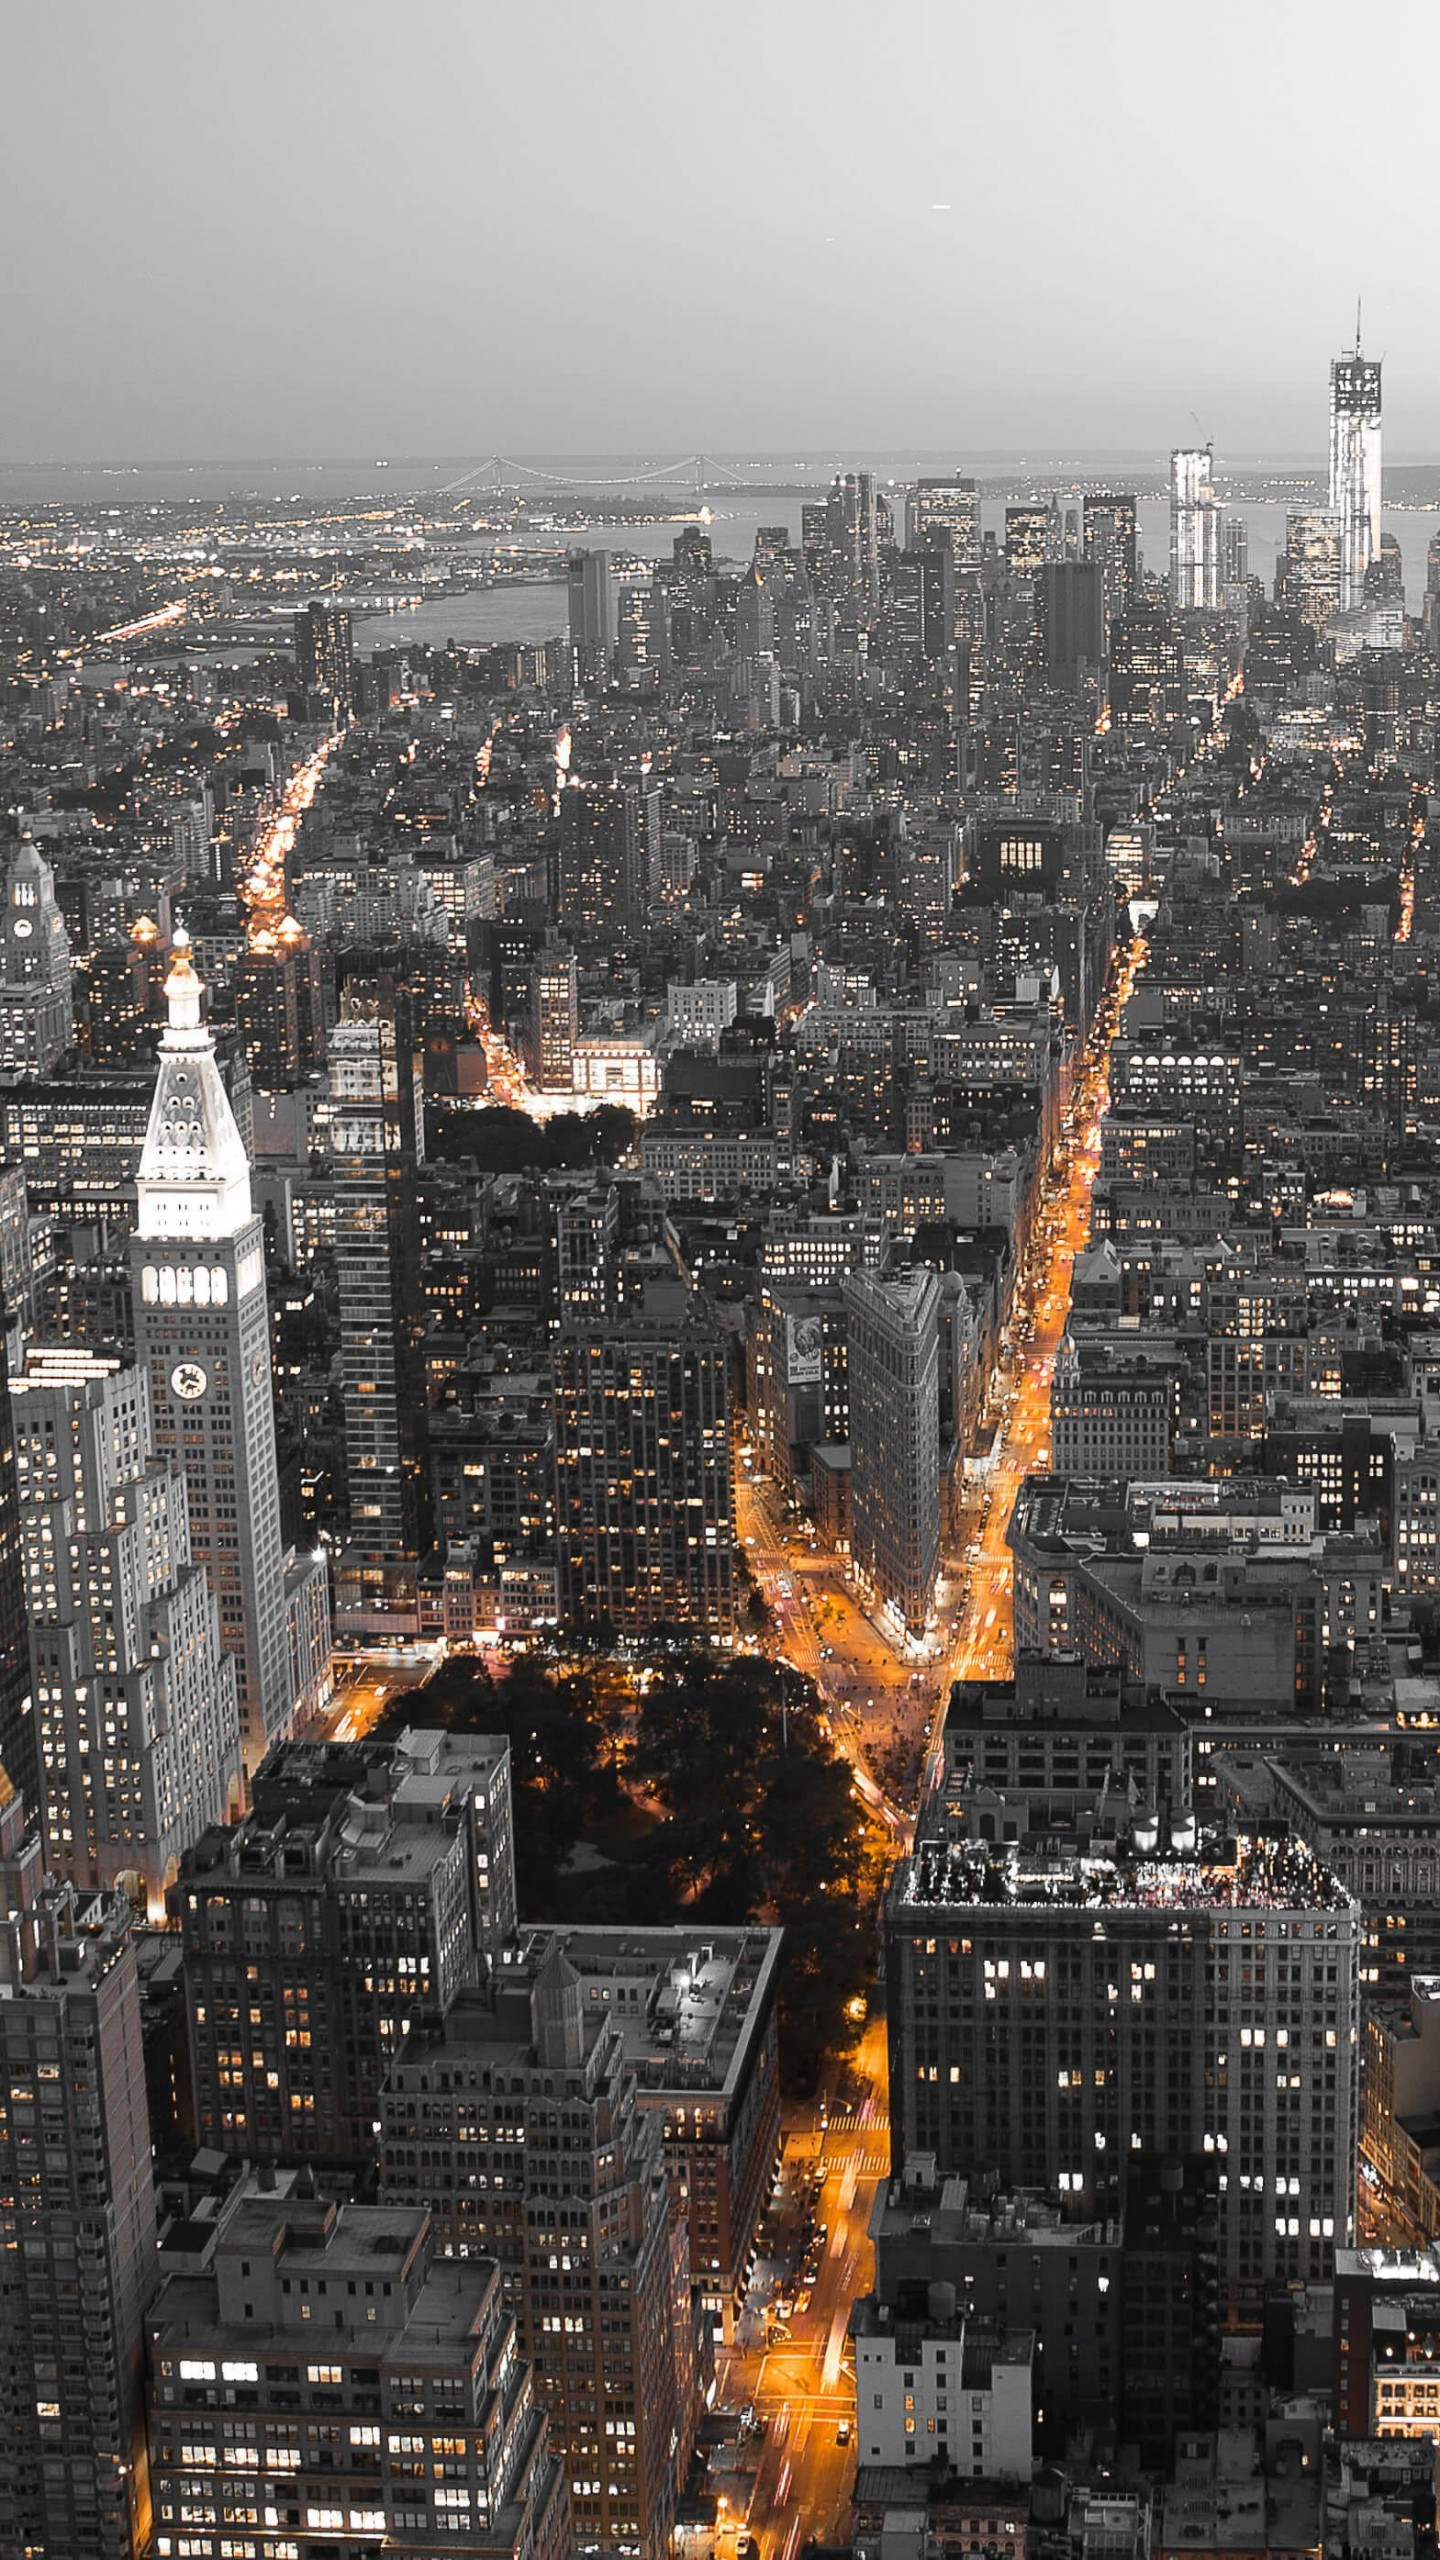 New York City by Night Wallpaper for LG G3